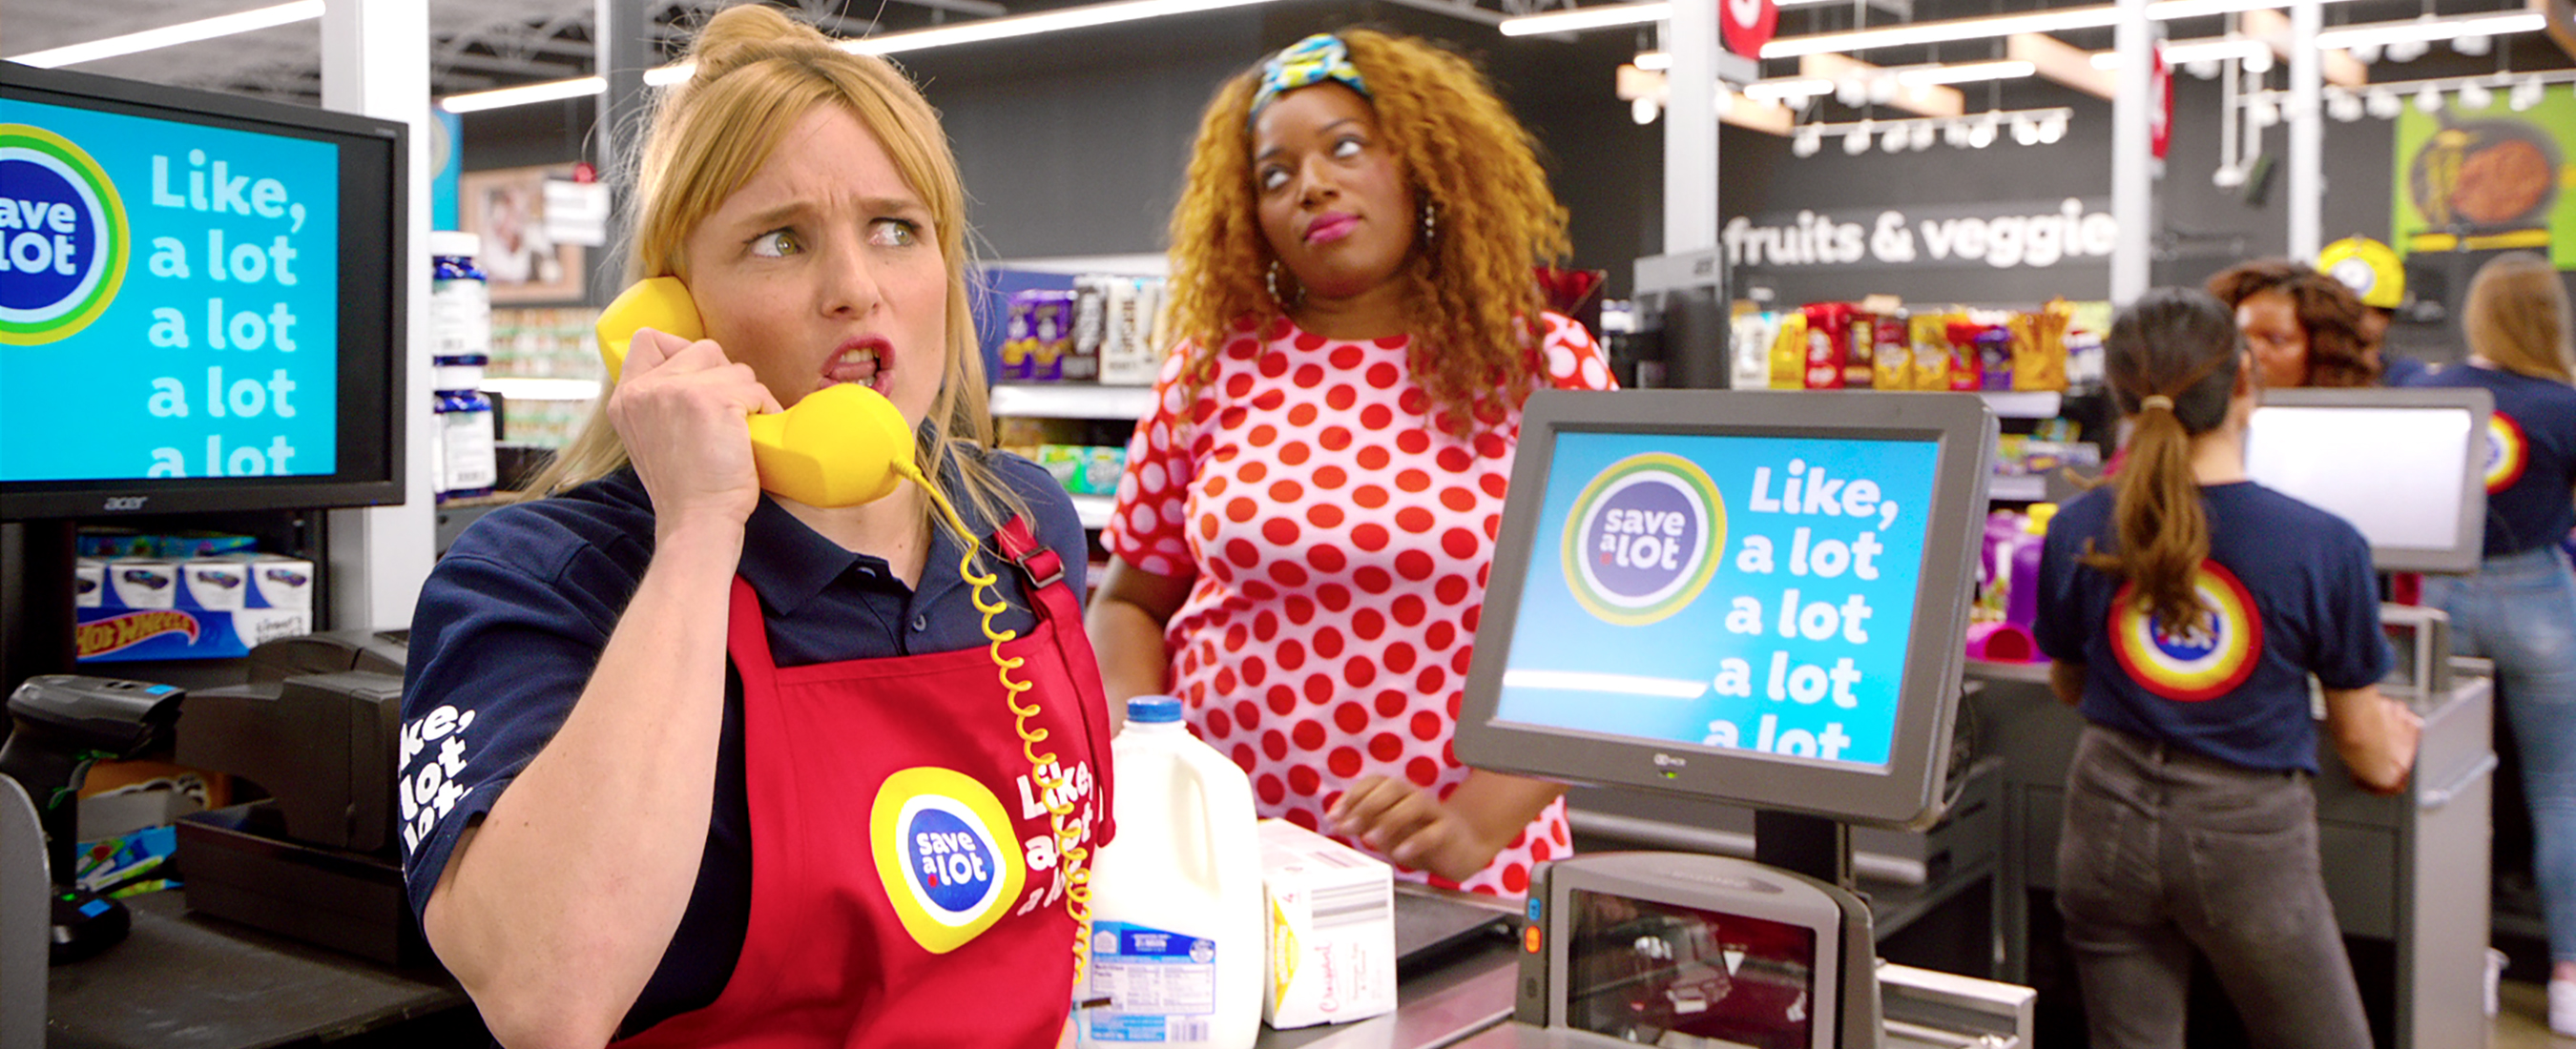 """Save A Lot Brings """"Like, A Lot A Lot"""" of Fun, Energy to the Grocery Space with Original Song, Music Video and Brand Campaign"""